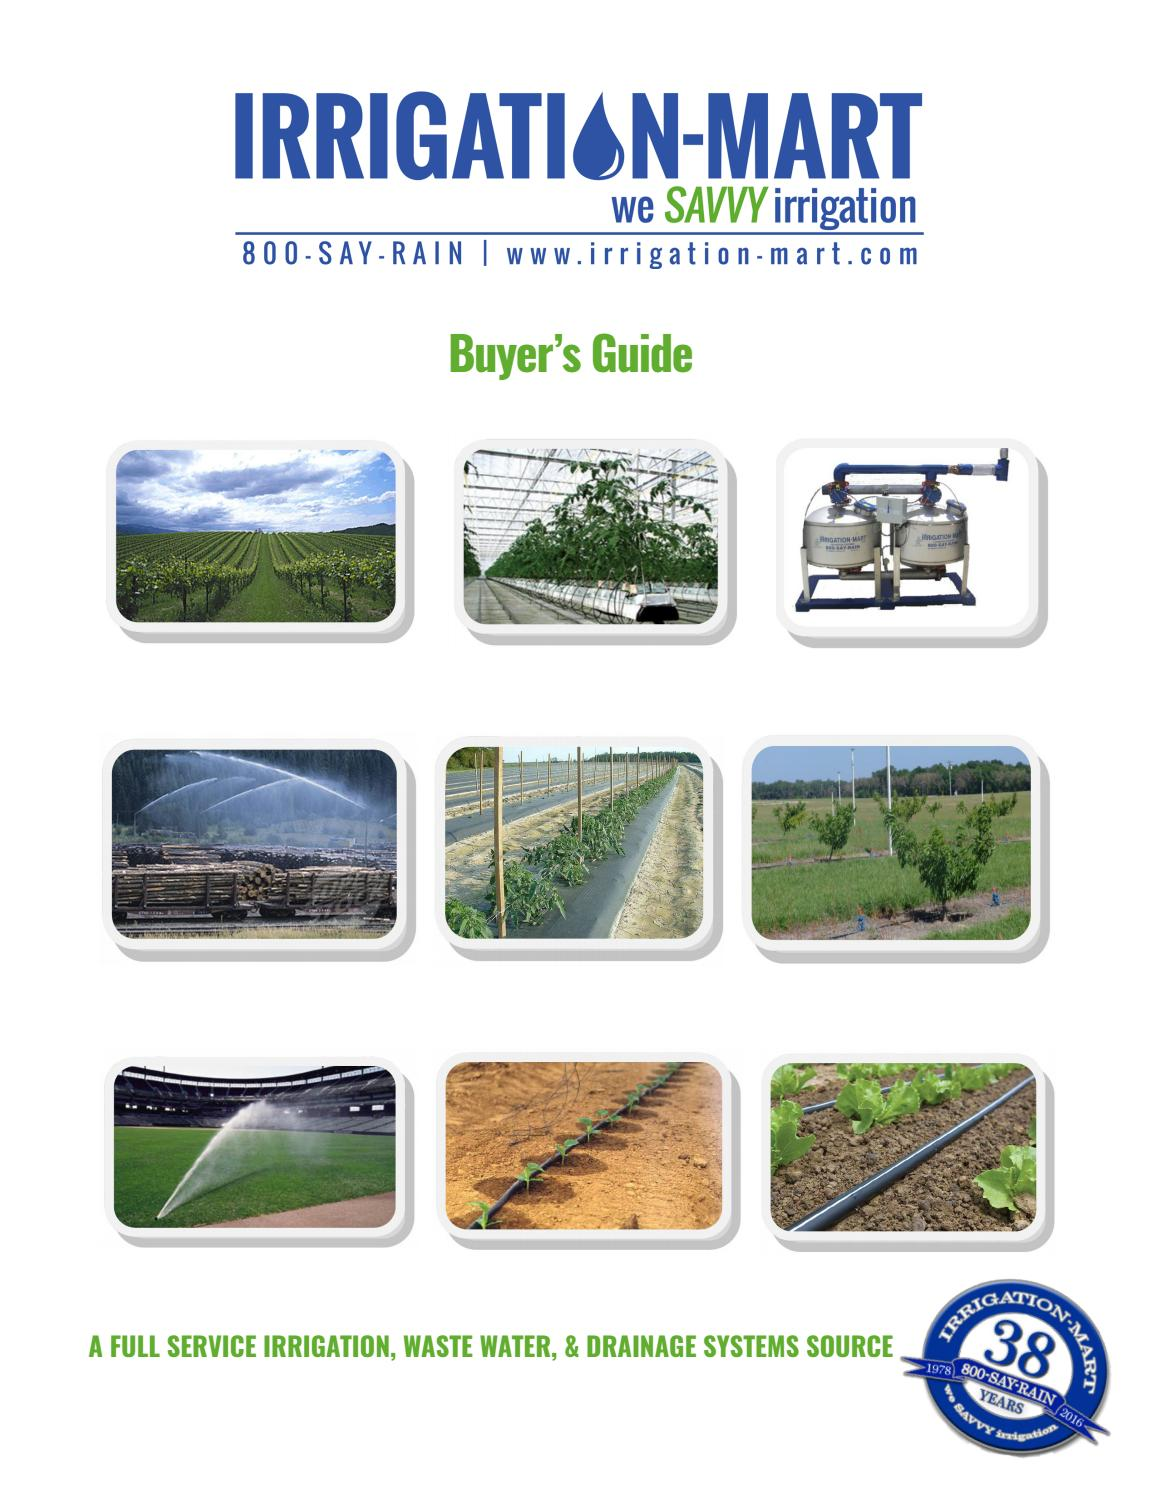 Irrigation-Mart Buyers Guide by Irrigation-Mart - issuu